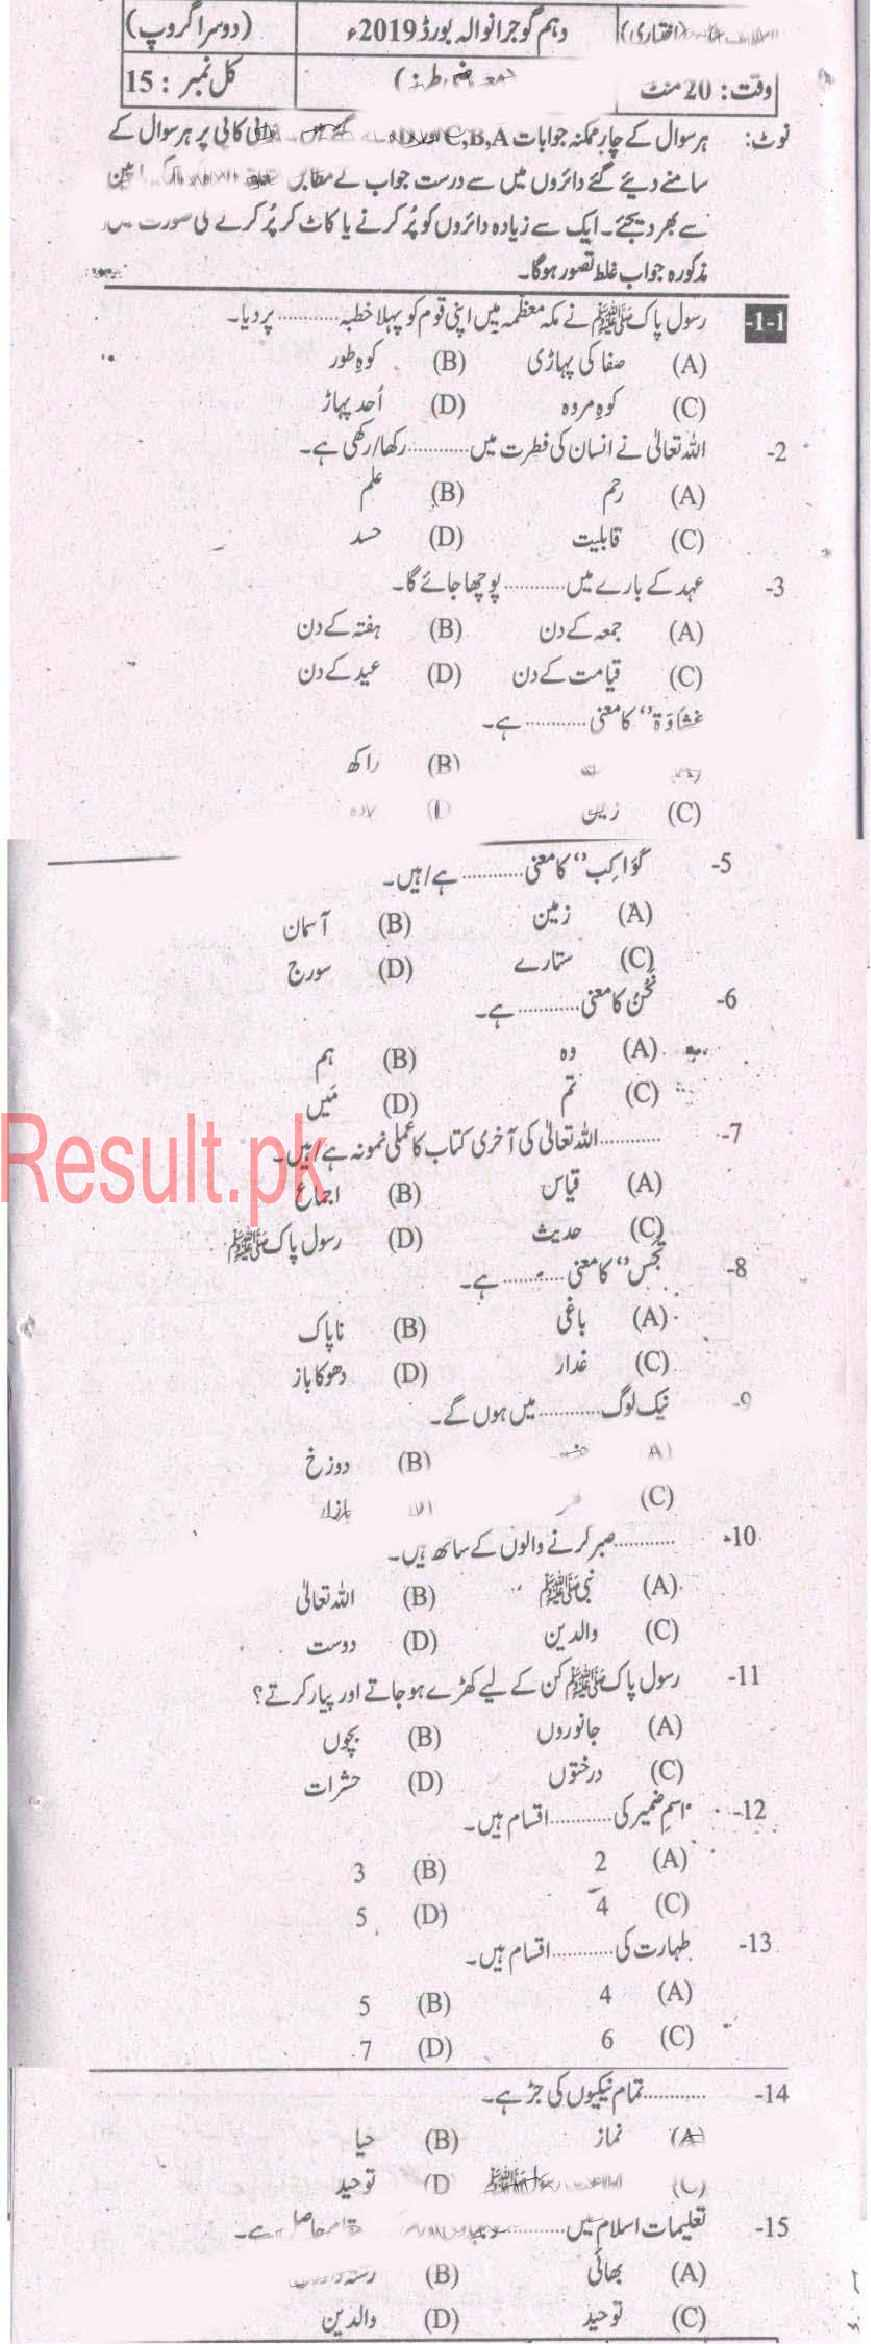 BISE Gujranwala Board Past Papers 2021 Matric, SSC Part 1